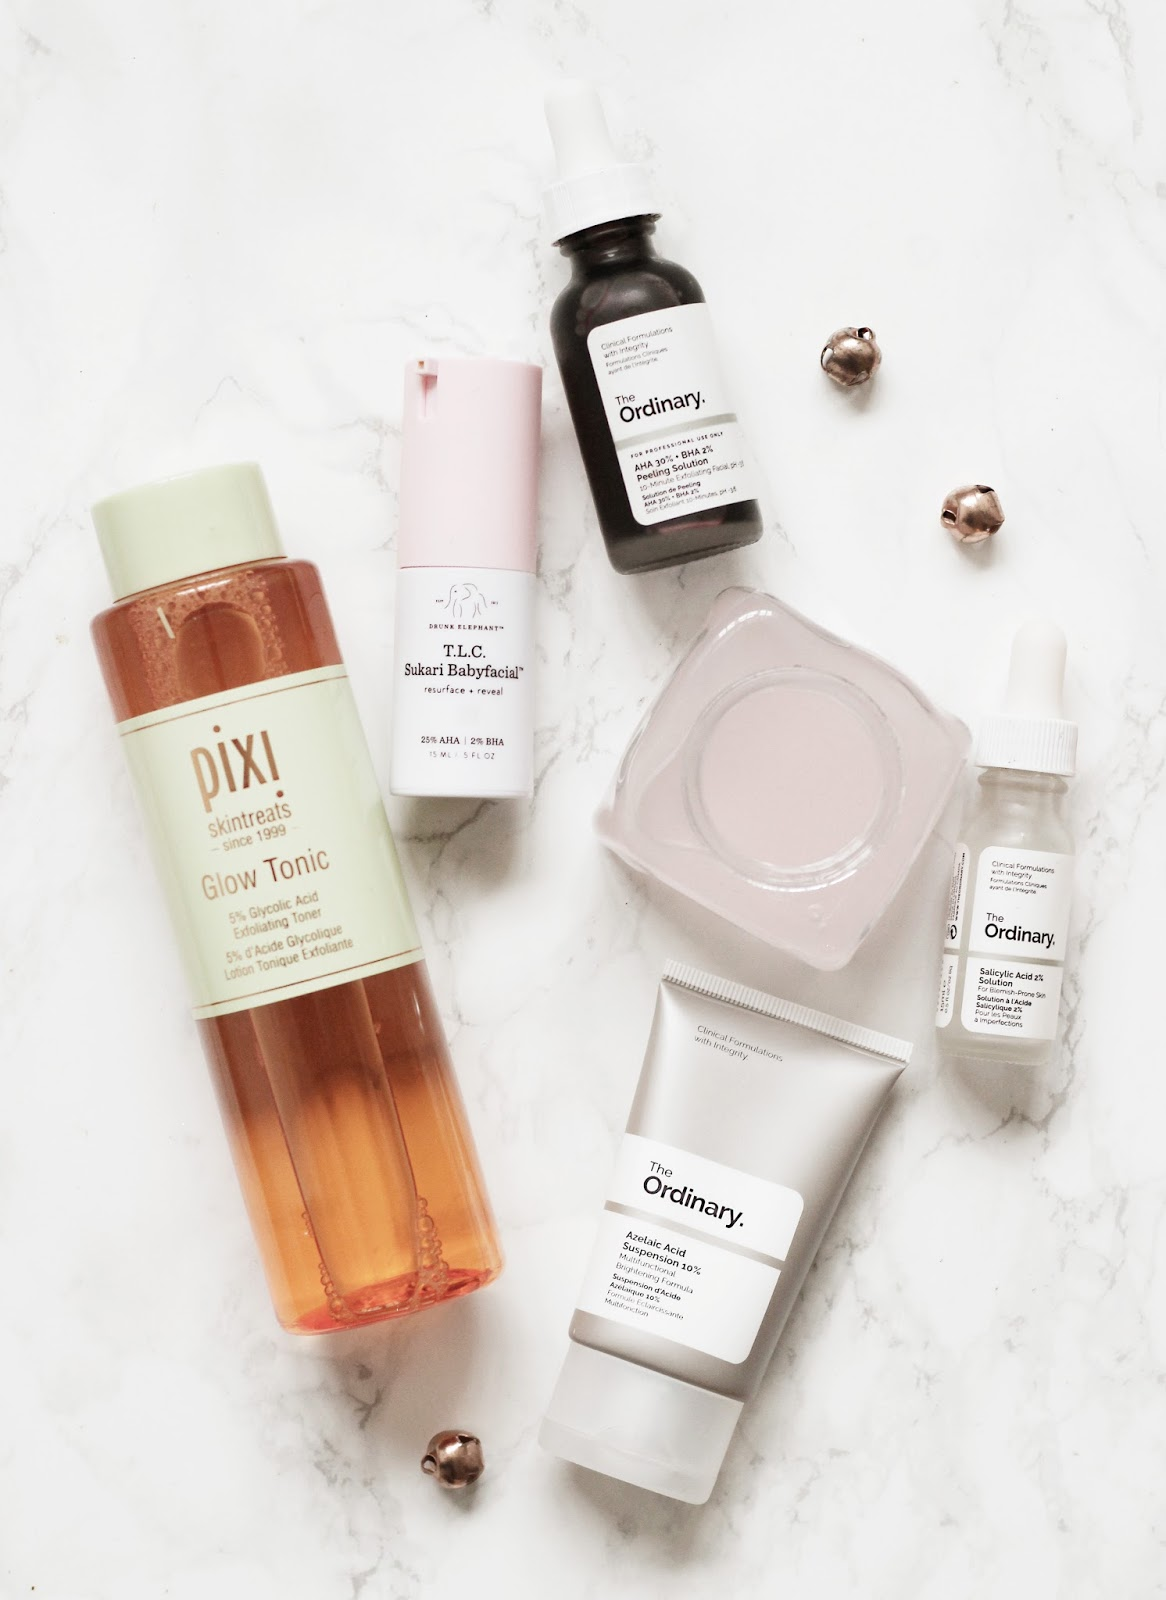 The Ordinary, Pixi Glow Tonic, Drunk Elephant Baby Facial Review